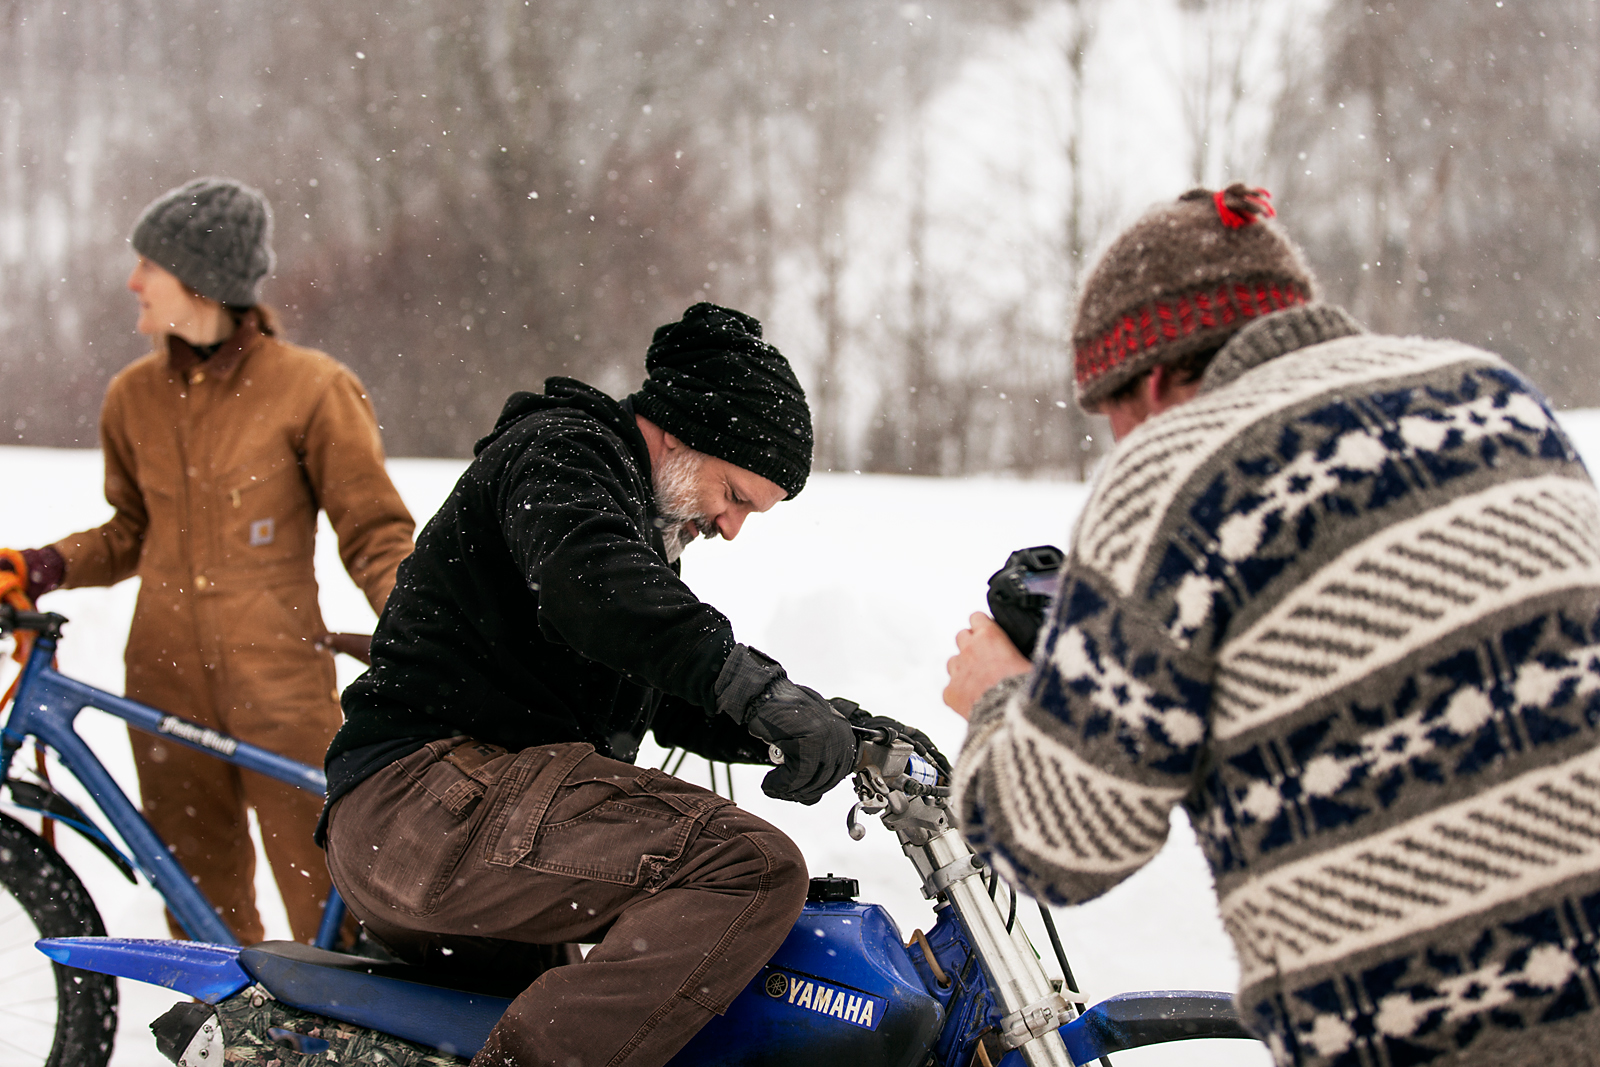 Motorcycles, Woods, Snow